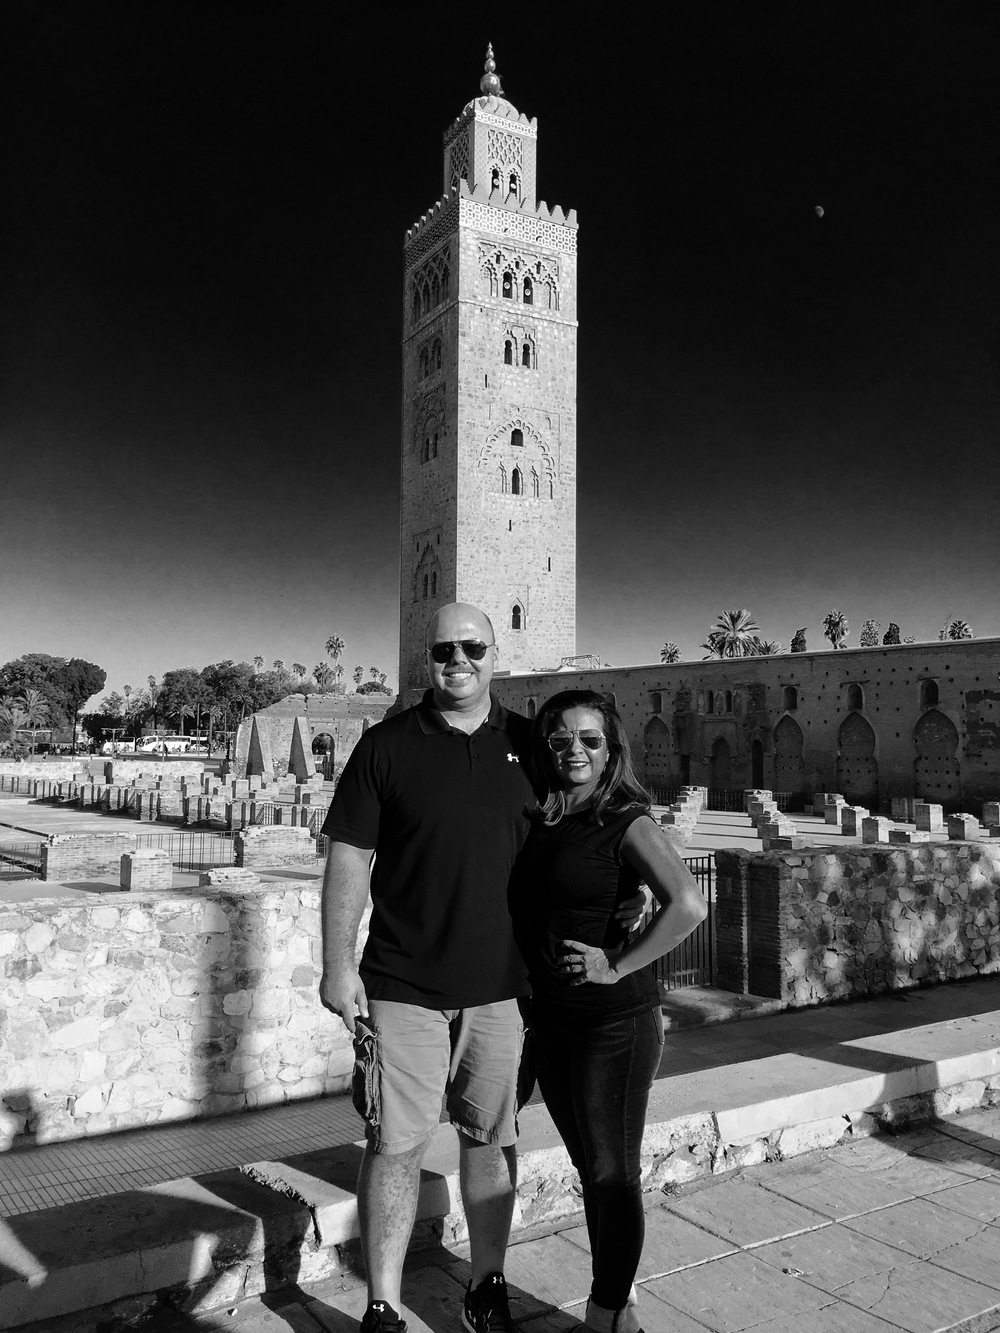 My Alex took a beautiful photo of Rusk and I at the Marrakech Medina square with a magnificent view of the Mosque minaret.